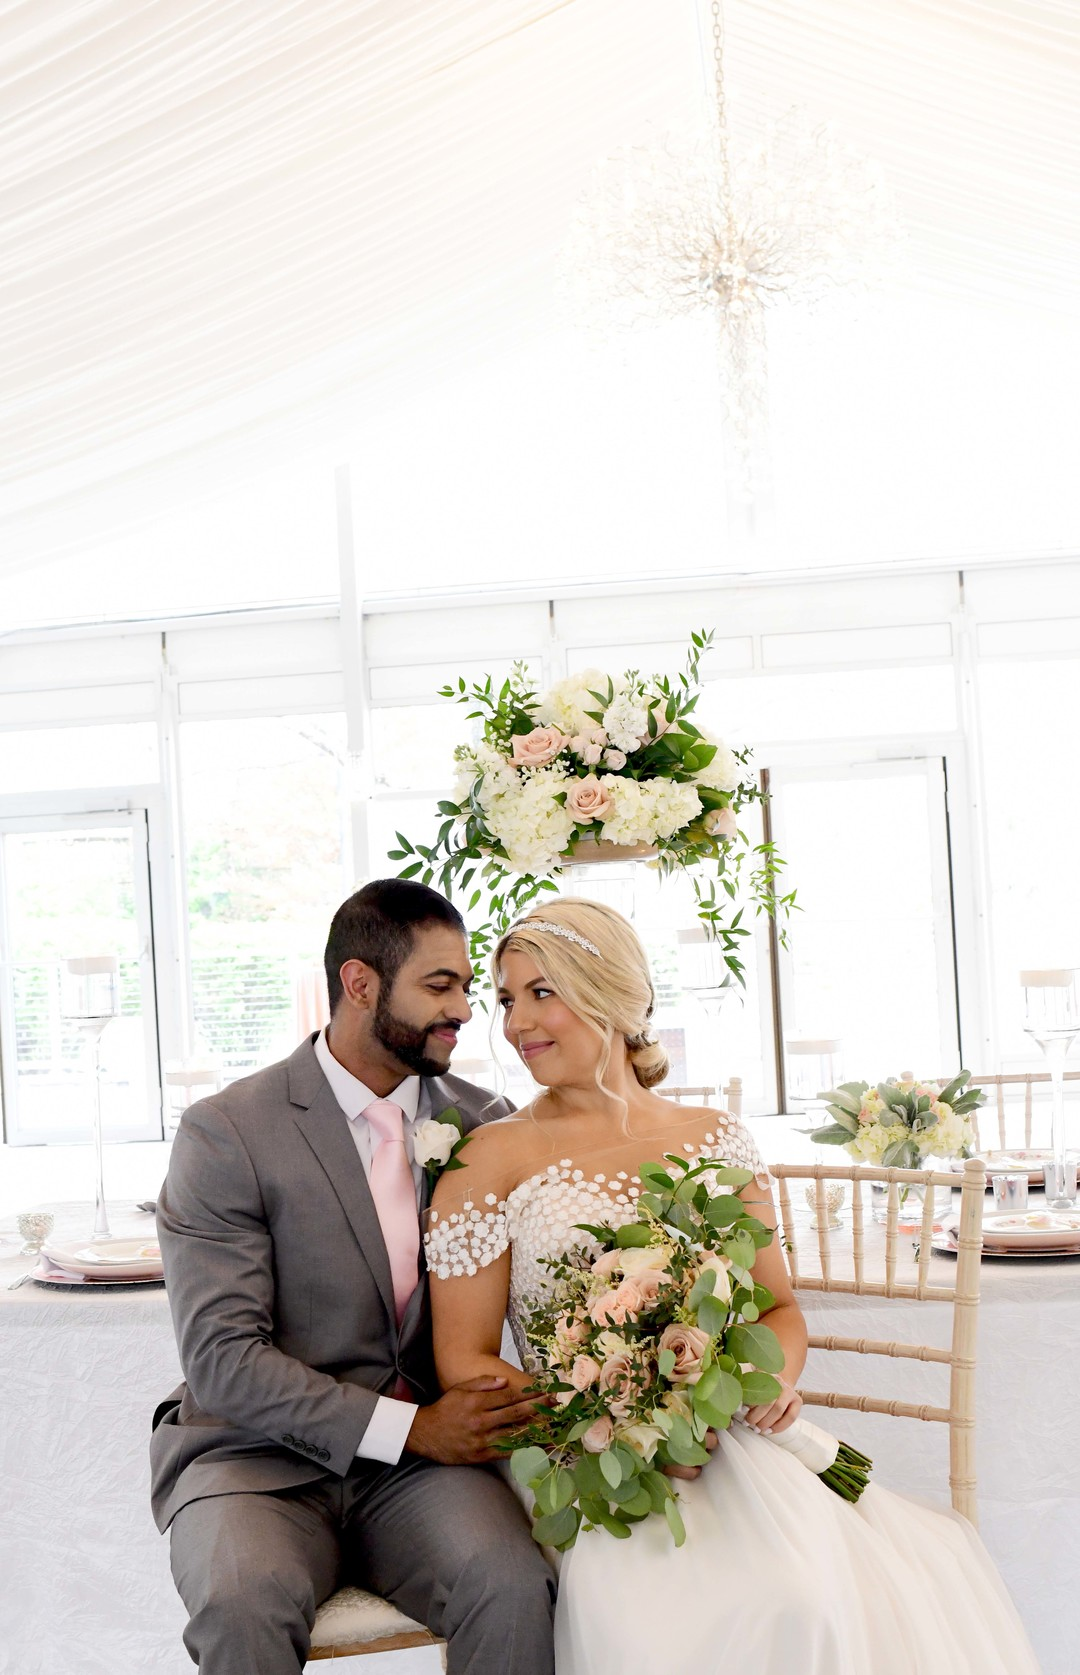 Romantic ivory and rose gold wedding inspiration captured by Lori Sapio. See more elegant wedding ideas at CHItheeWED.com!